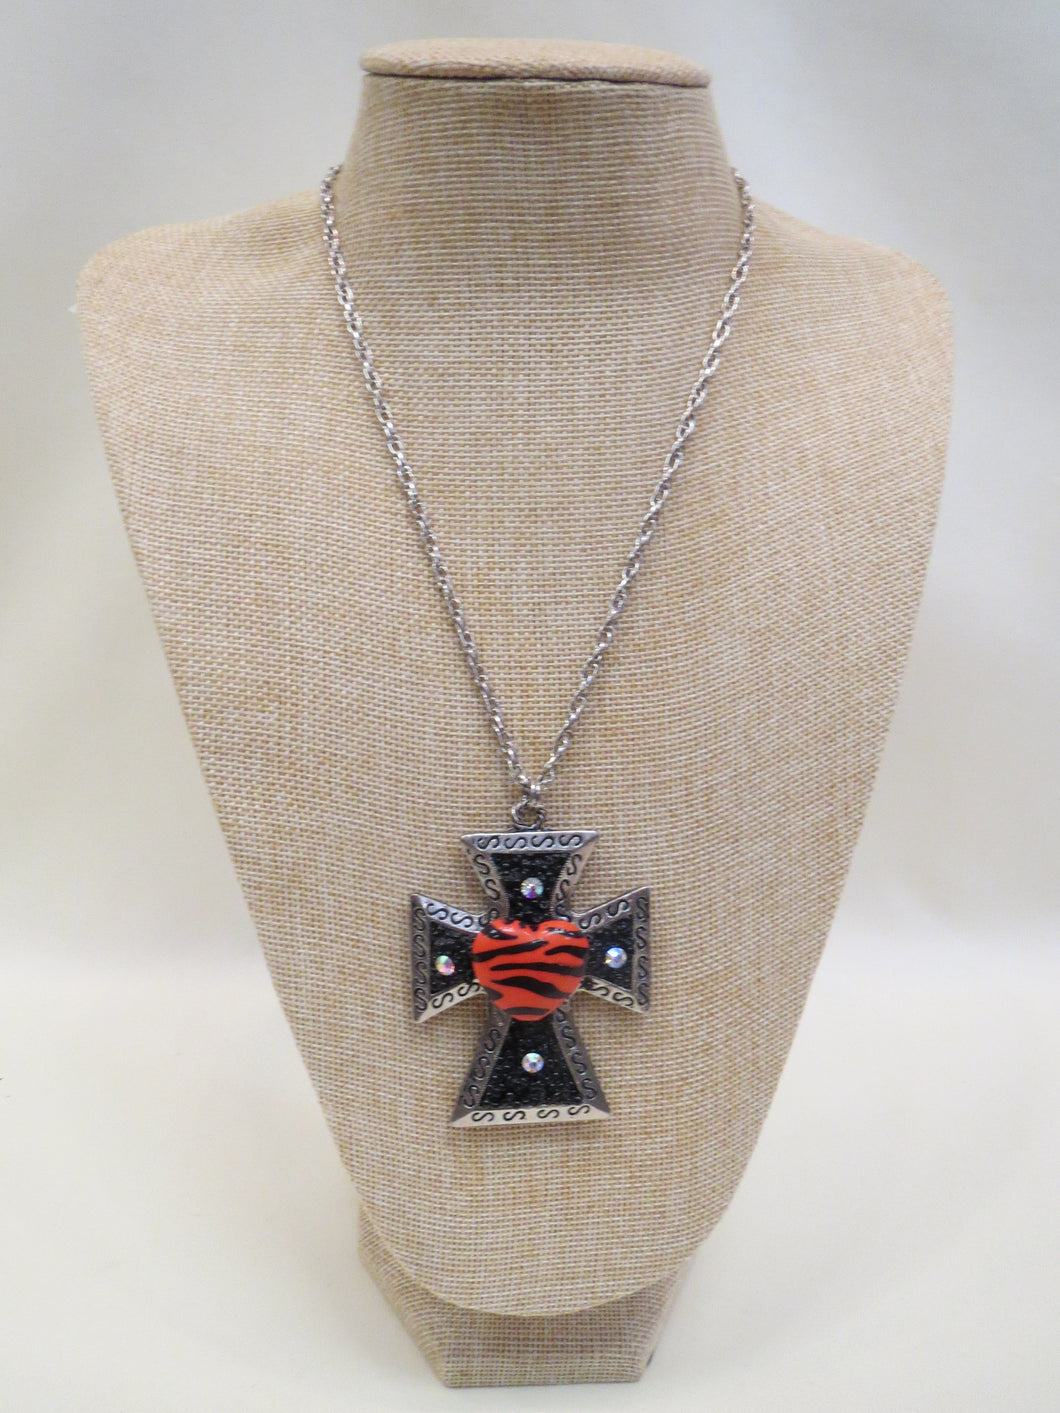 ADO Tiger Heart Cross Necklace | All Dec'd Out